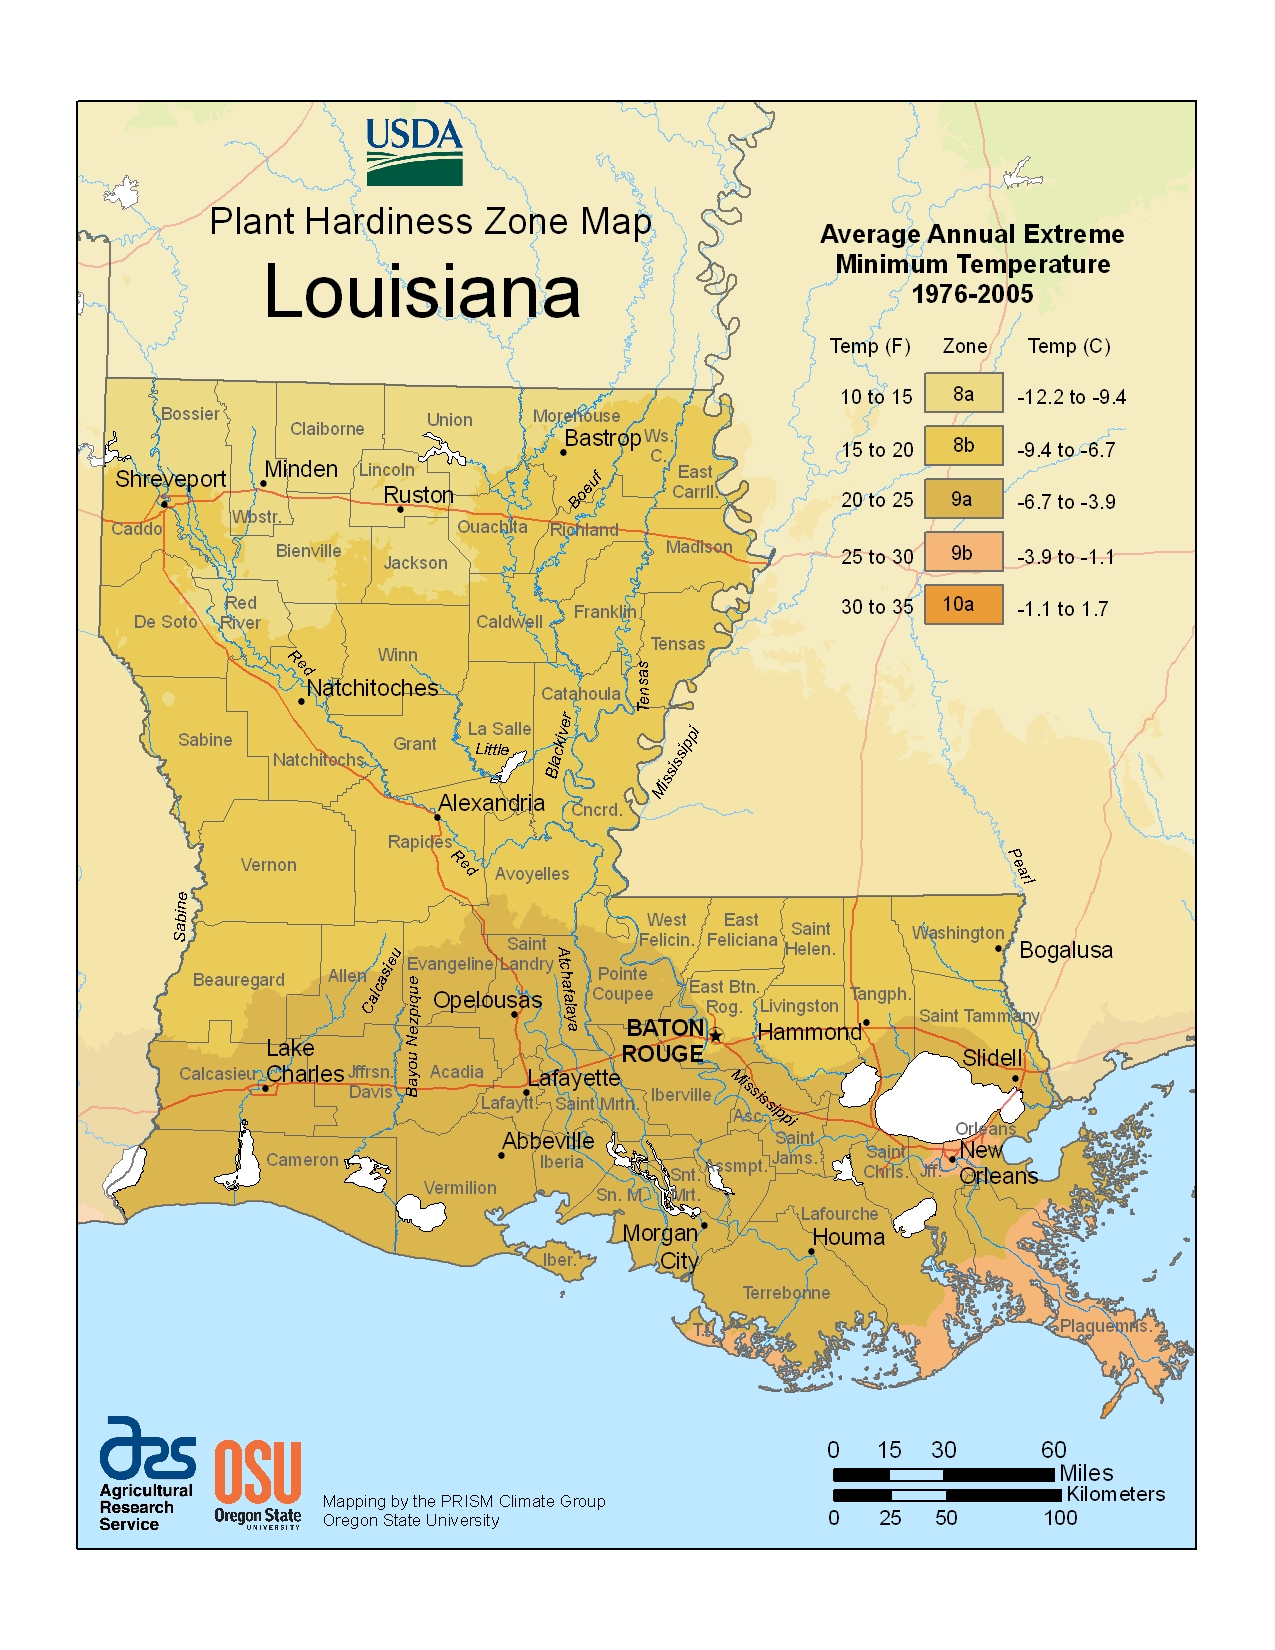 Plant Hardiness Zones | The How Do Gardener on usda weather map, usda garden map, usda frost map, usda regions map, usda zone chart, agricultural zone map, ahs heat zone map, plant zone map, texas state plane coordinate zones map, usda zone 8 map, fruit zone map, usda climate zones, usda crop zones, usda zone map of jacksonville florida, wind zone rating map, usda gardening zones, usda home map, usda zone map 2014, bangladesh map, growing zone map,